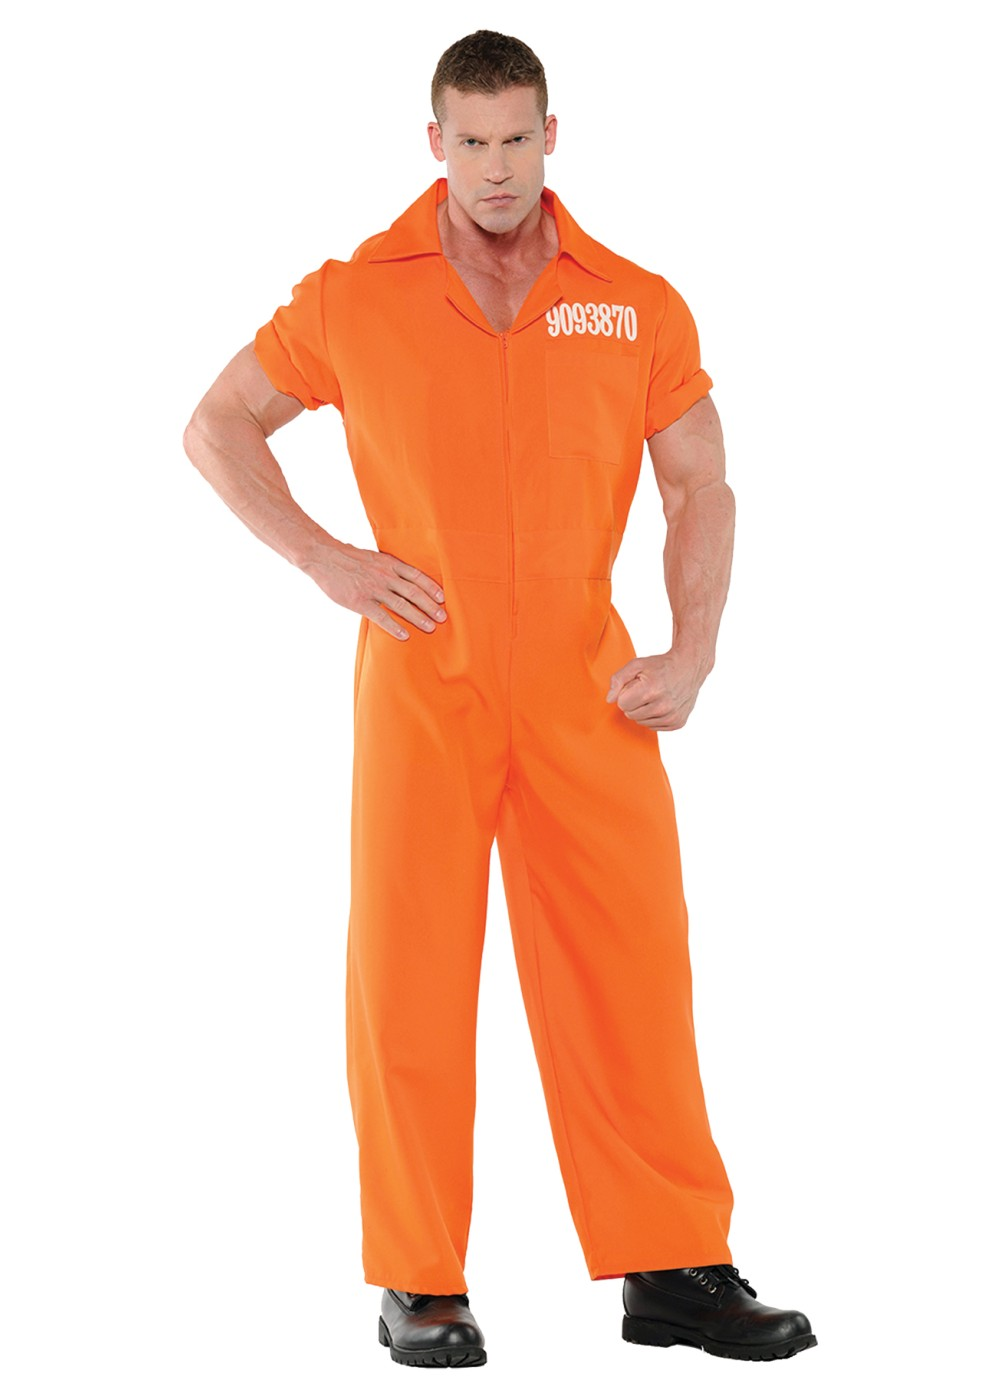 Convicted Men Prison Outfit  sc 1 st  Wonder Costumes & Prisoner Costumes Costumes u0026 prisoner costume accessories for kids ...